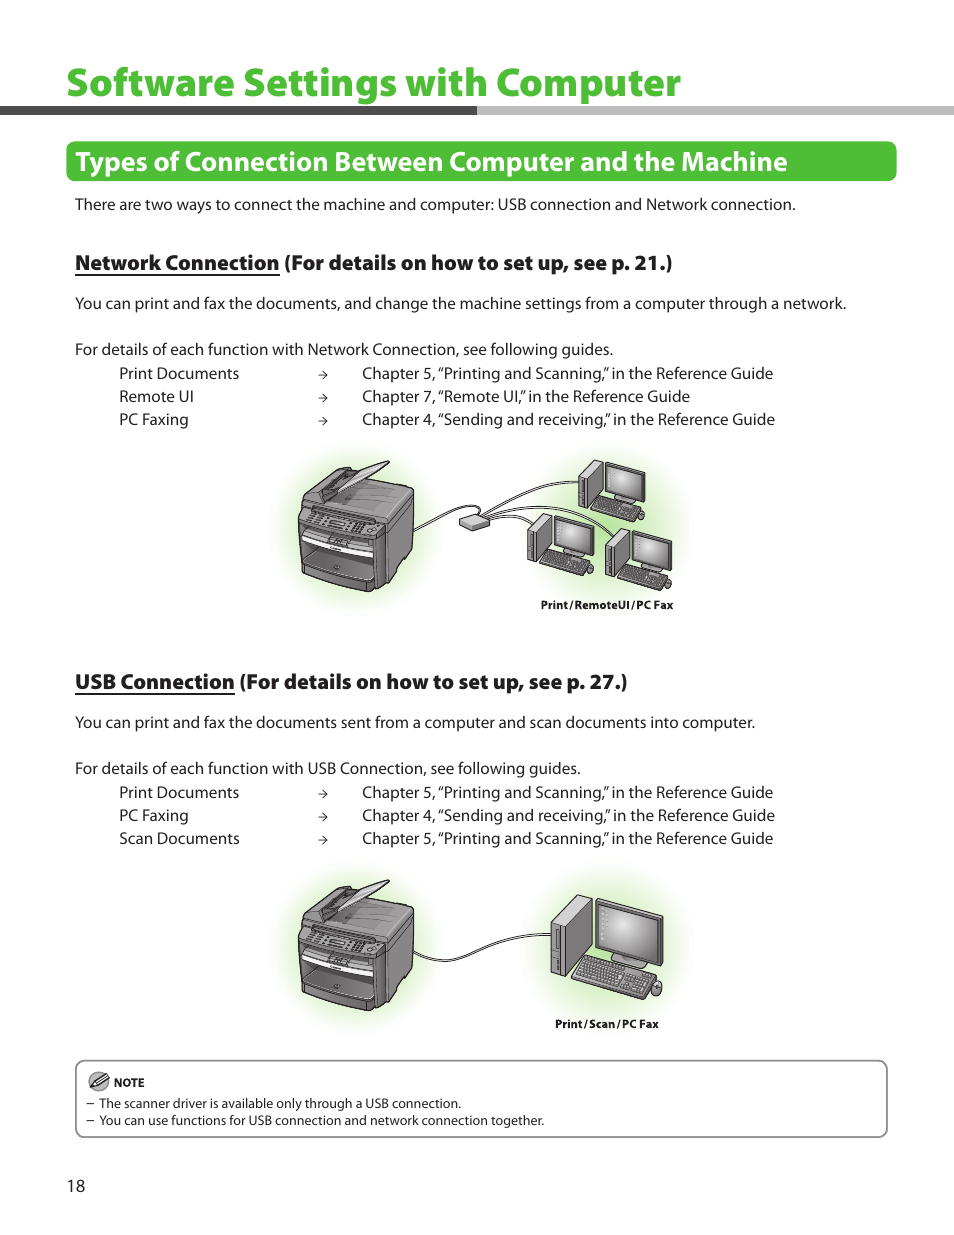 Software settings with computer, Network connection, Usb connection